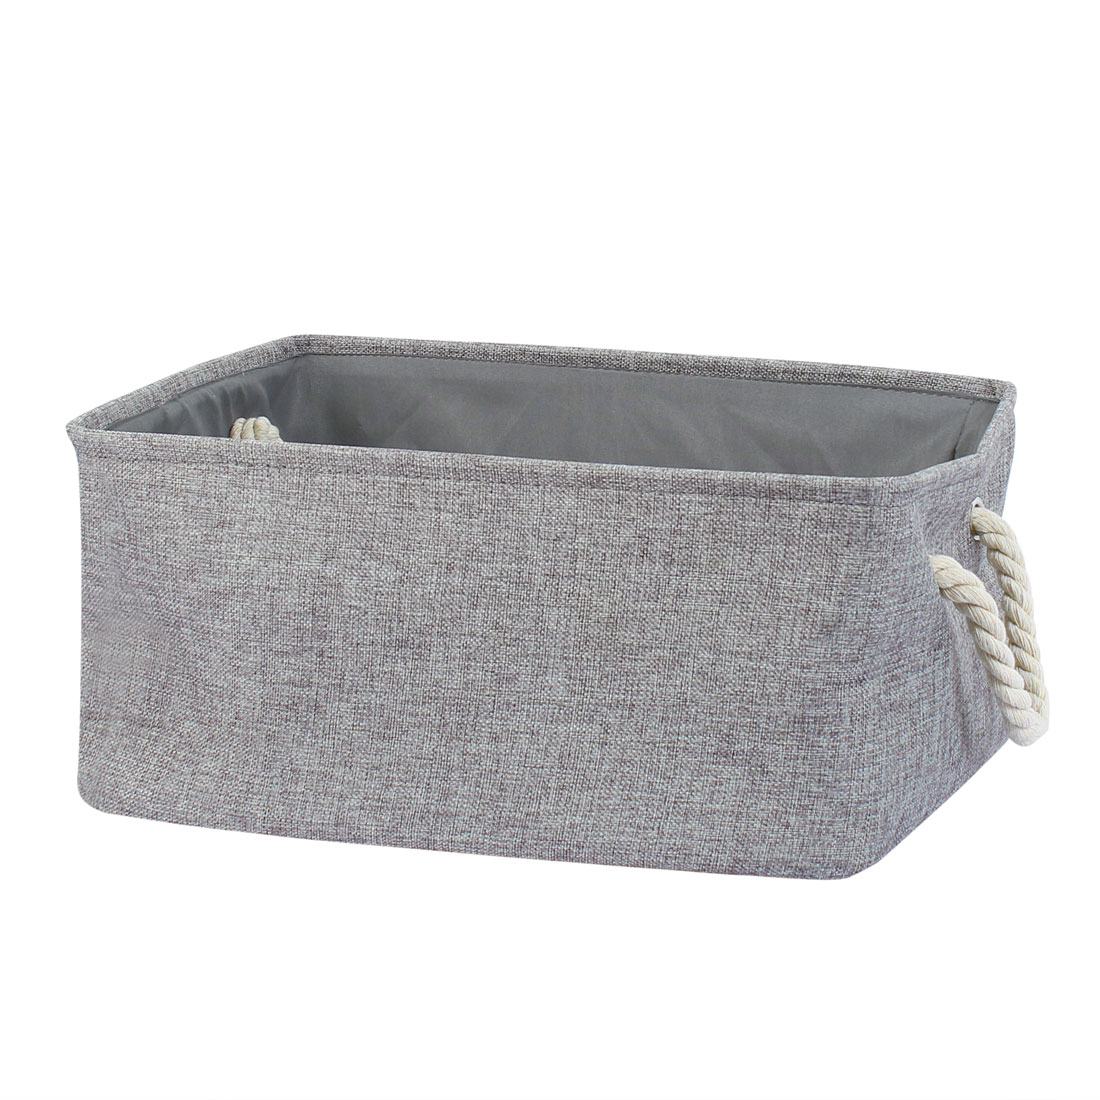 Collapsible Fabric Storage Bins Basket Toys Towels Storage Container Walmart Com Walmart Com